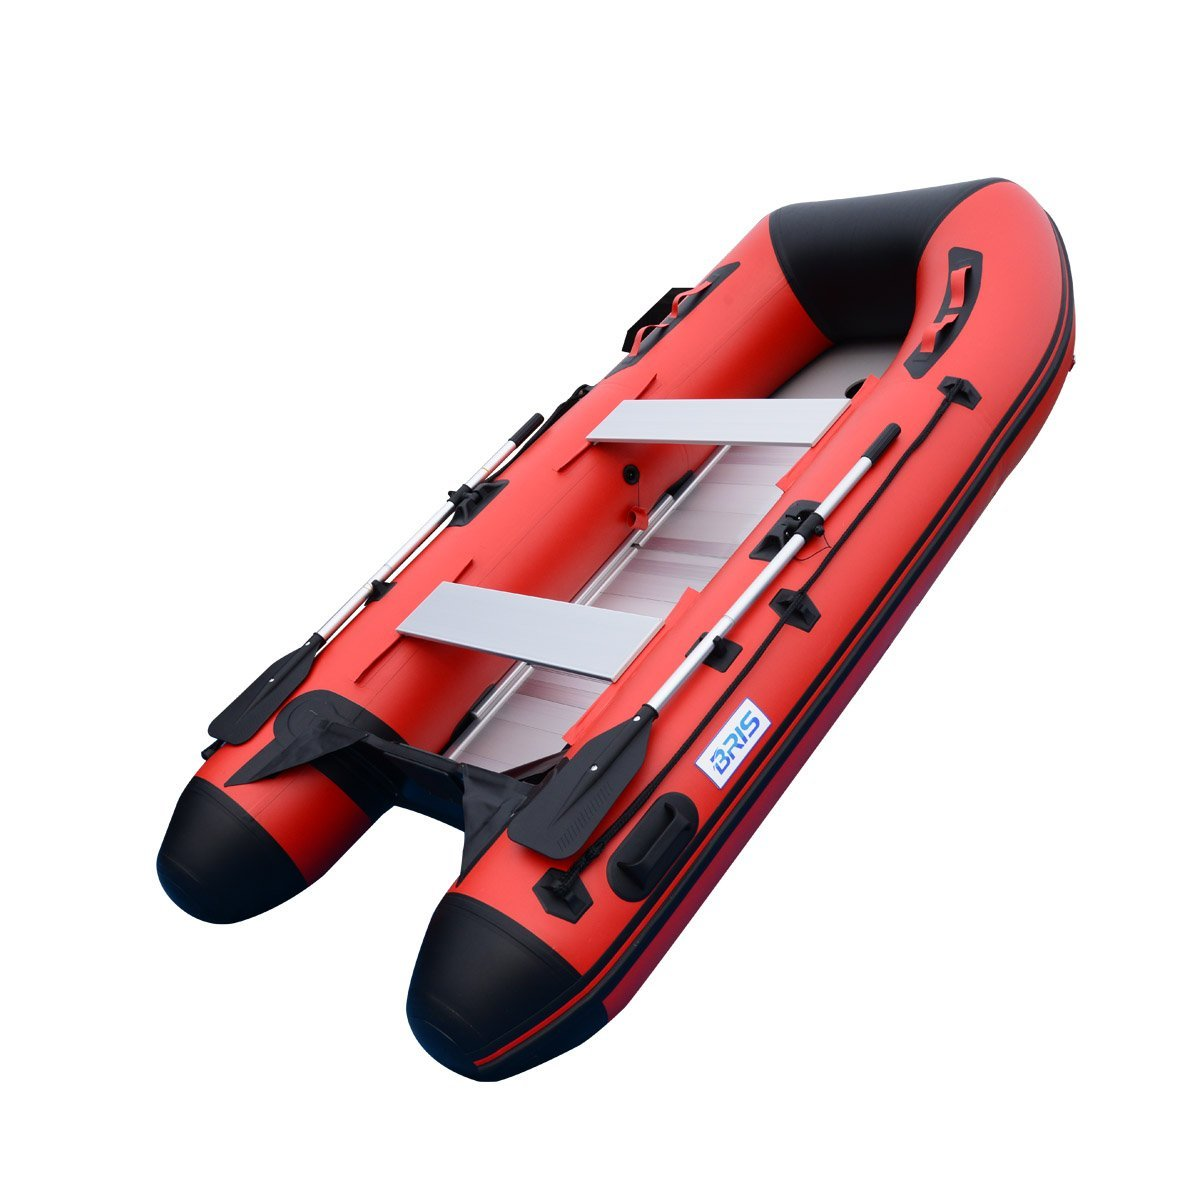 BRIS 10Ft Inflatable Boat Inflatable Dinghy Yacht Tender ...